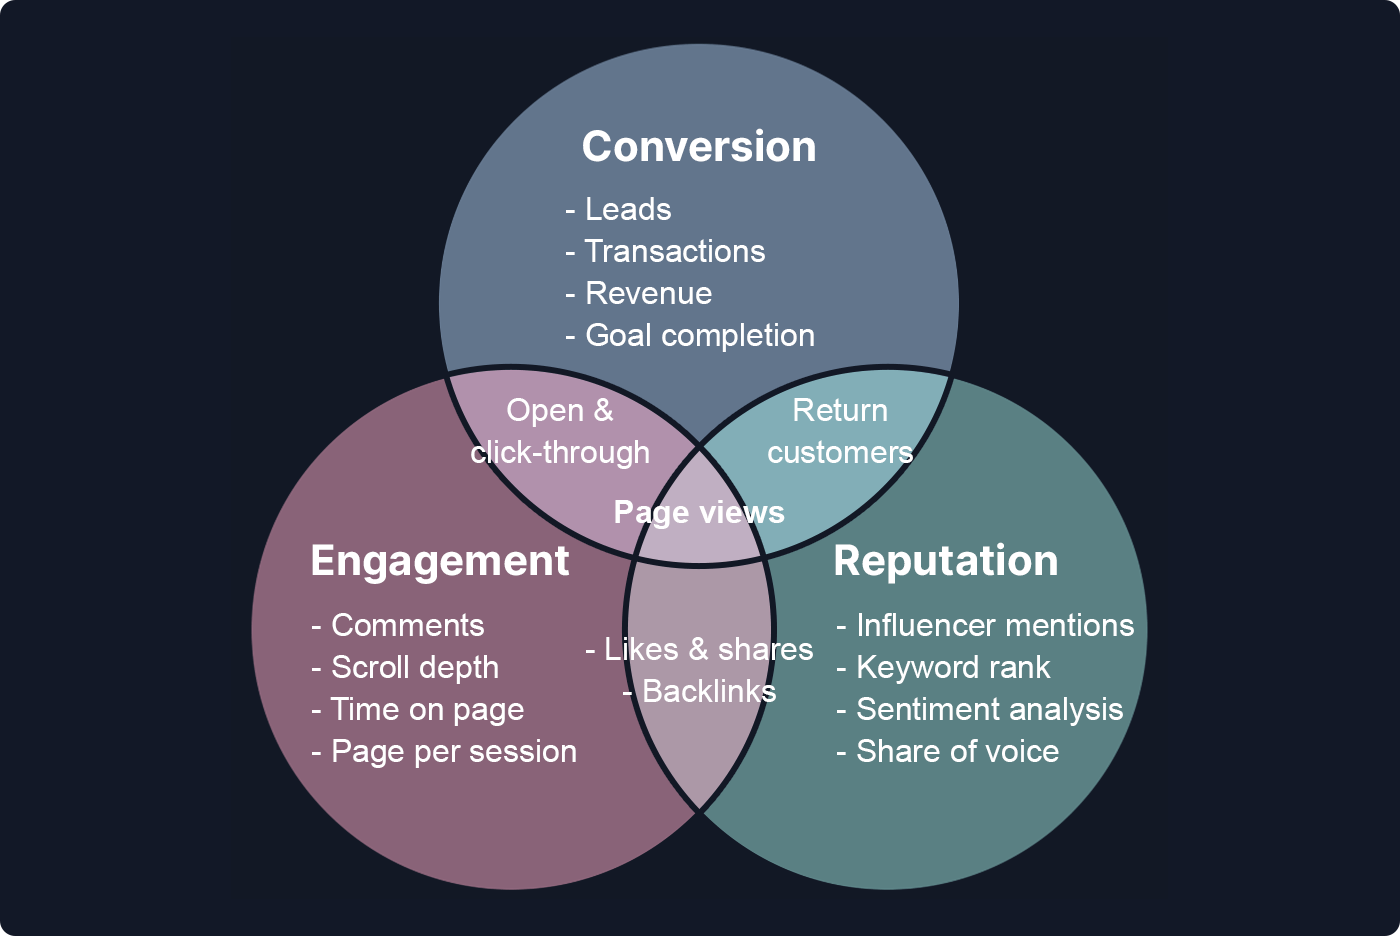 Venn diagram illustrating how page views tie into lots of other vital parts of any ecommerce business